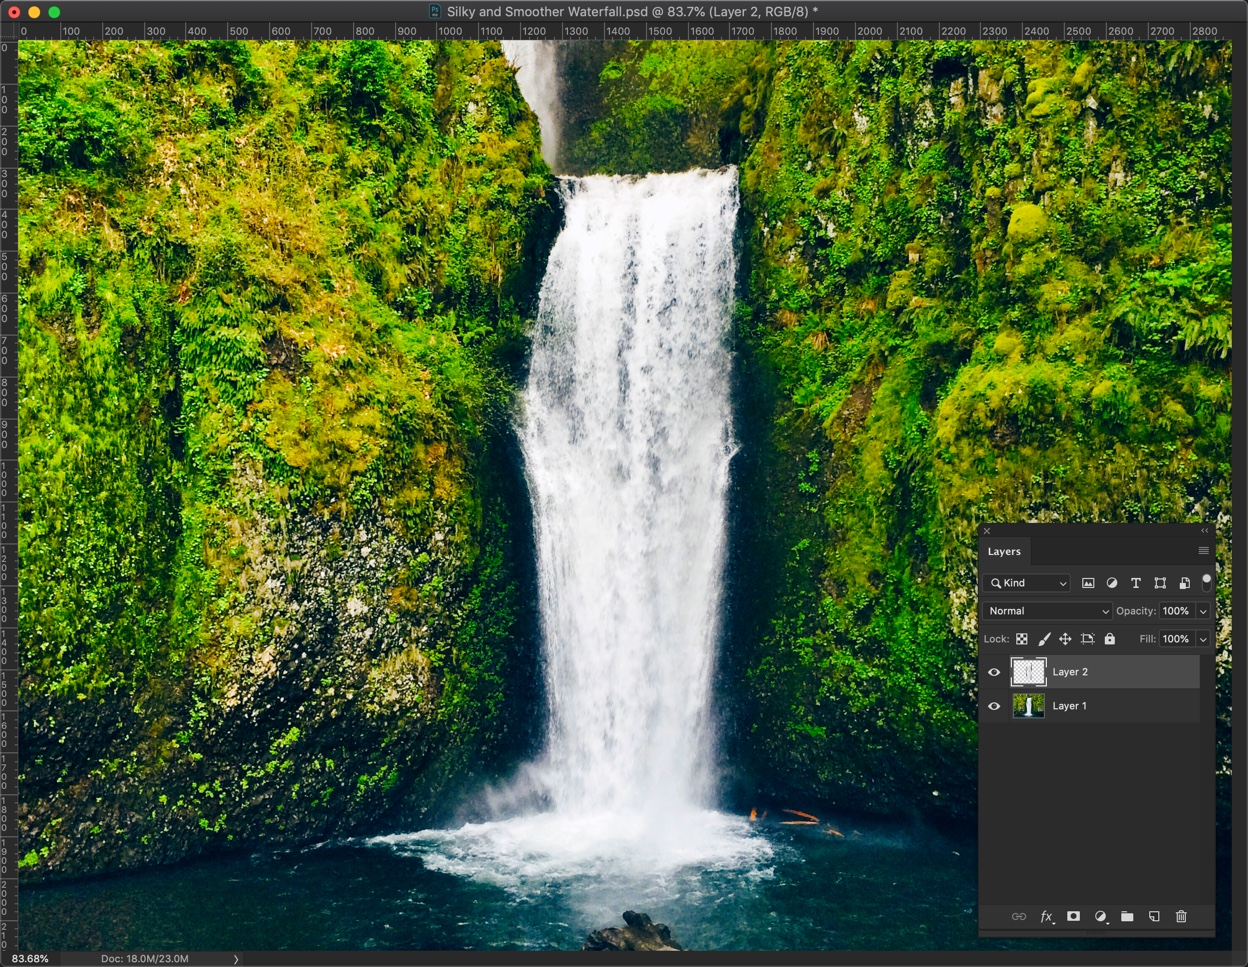 3-3 - Create a Silky and Smooth Waterfall in Photoshop